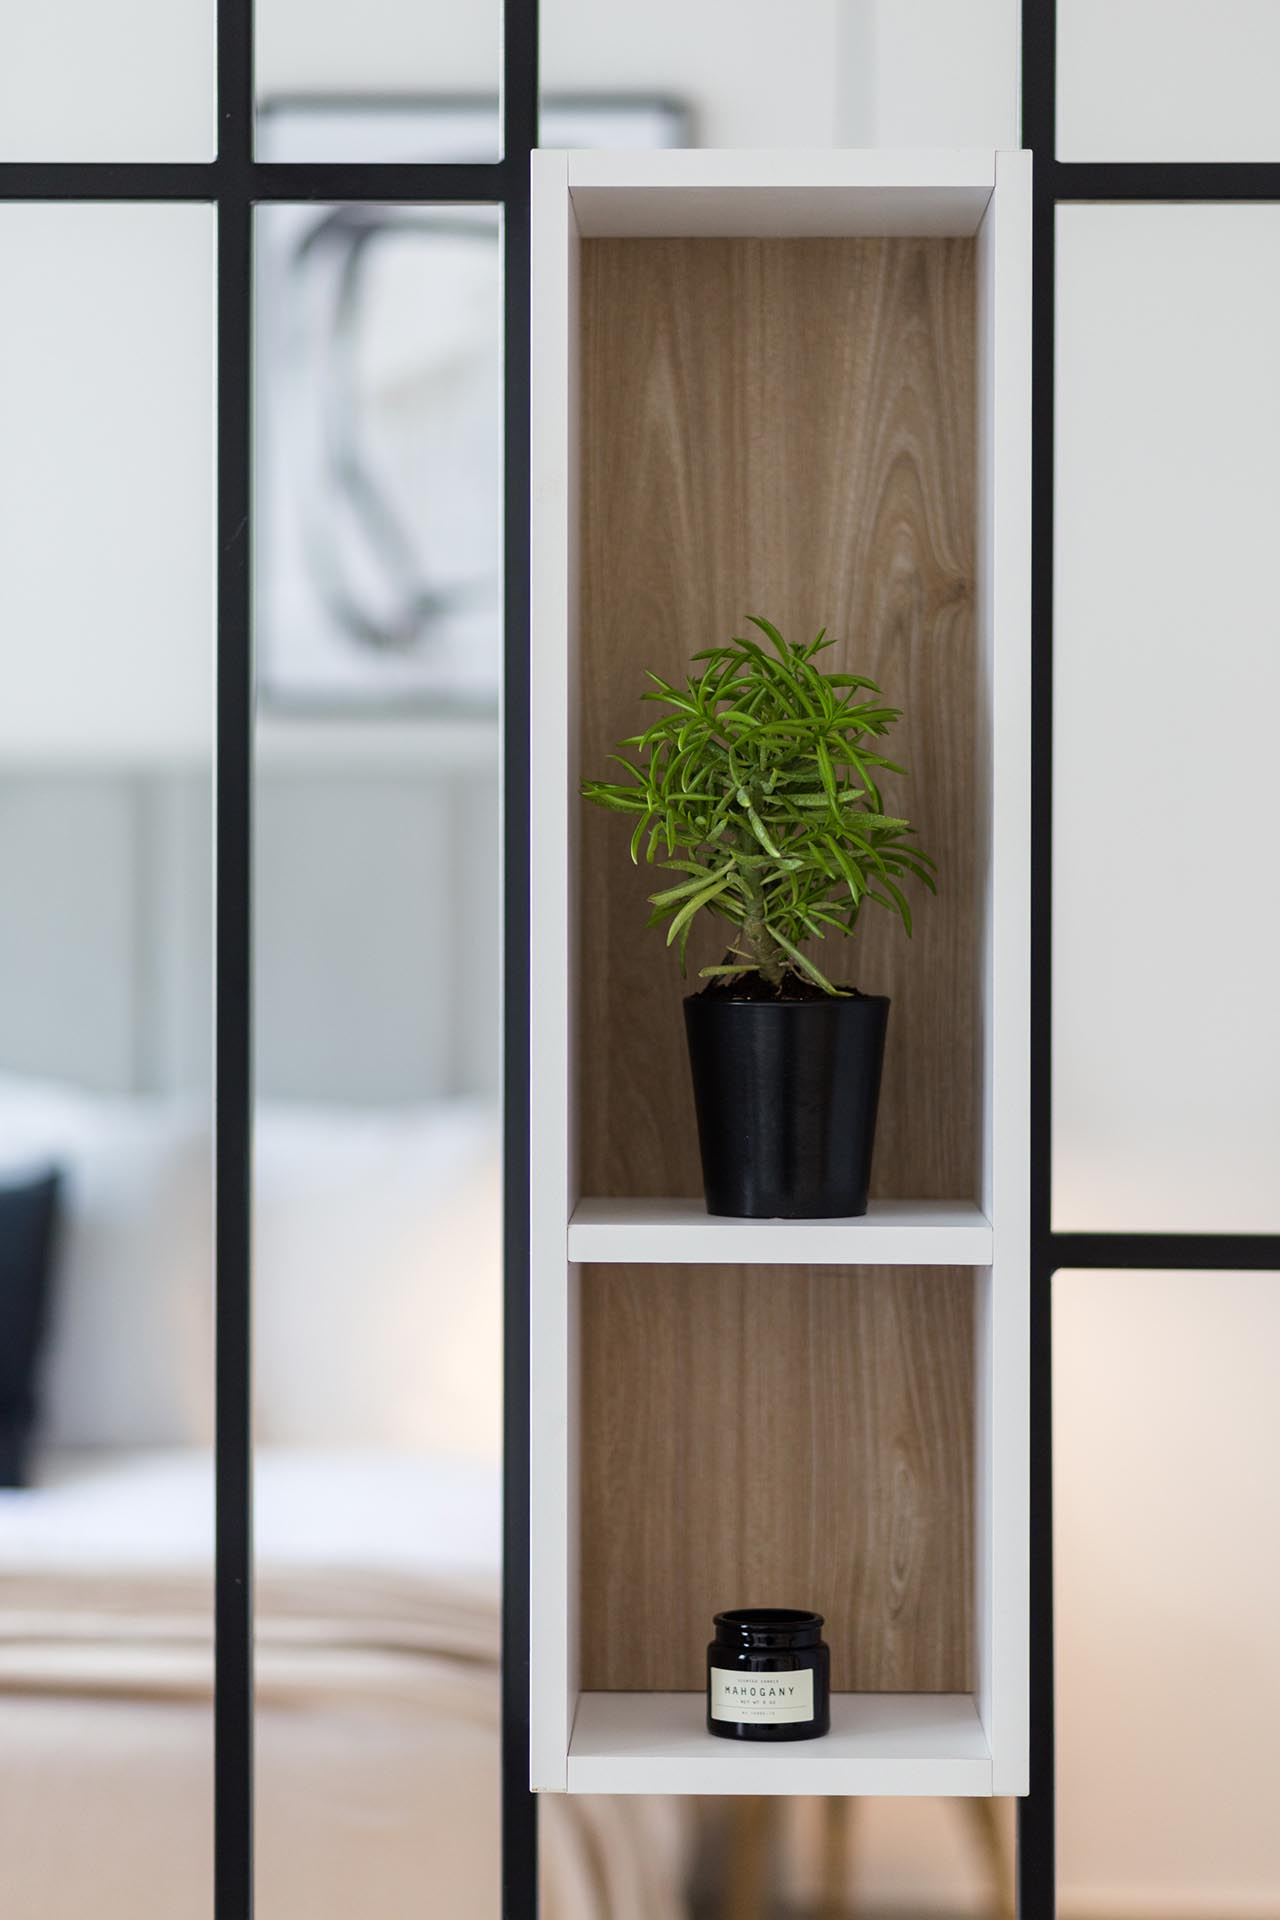 A modern room divider with built-in shelving.